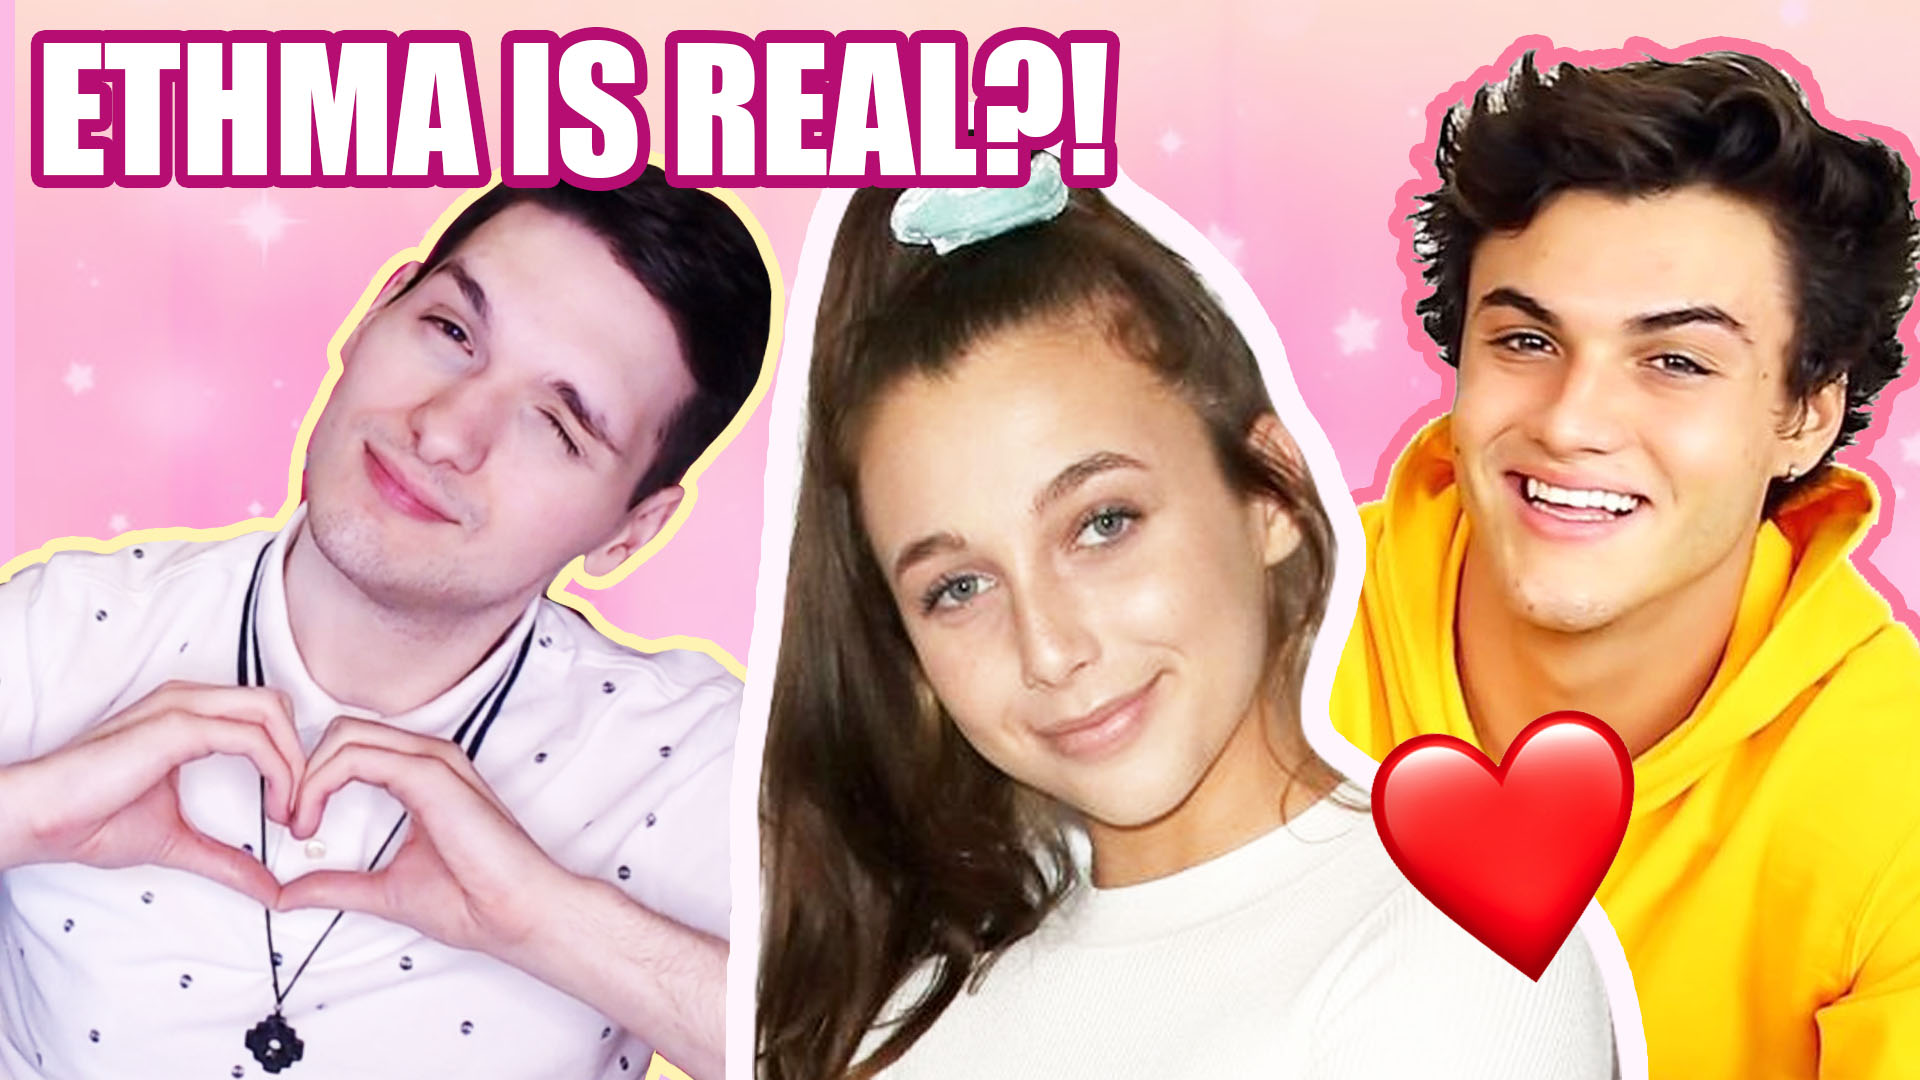 Is Ethma Real? Emma Chamberlain and Dolan Twins Psychic